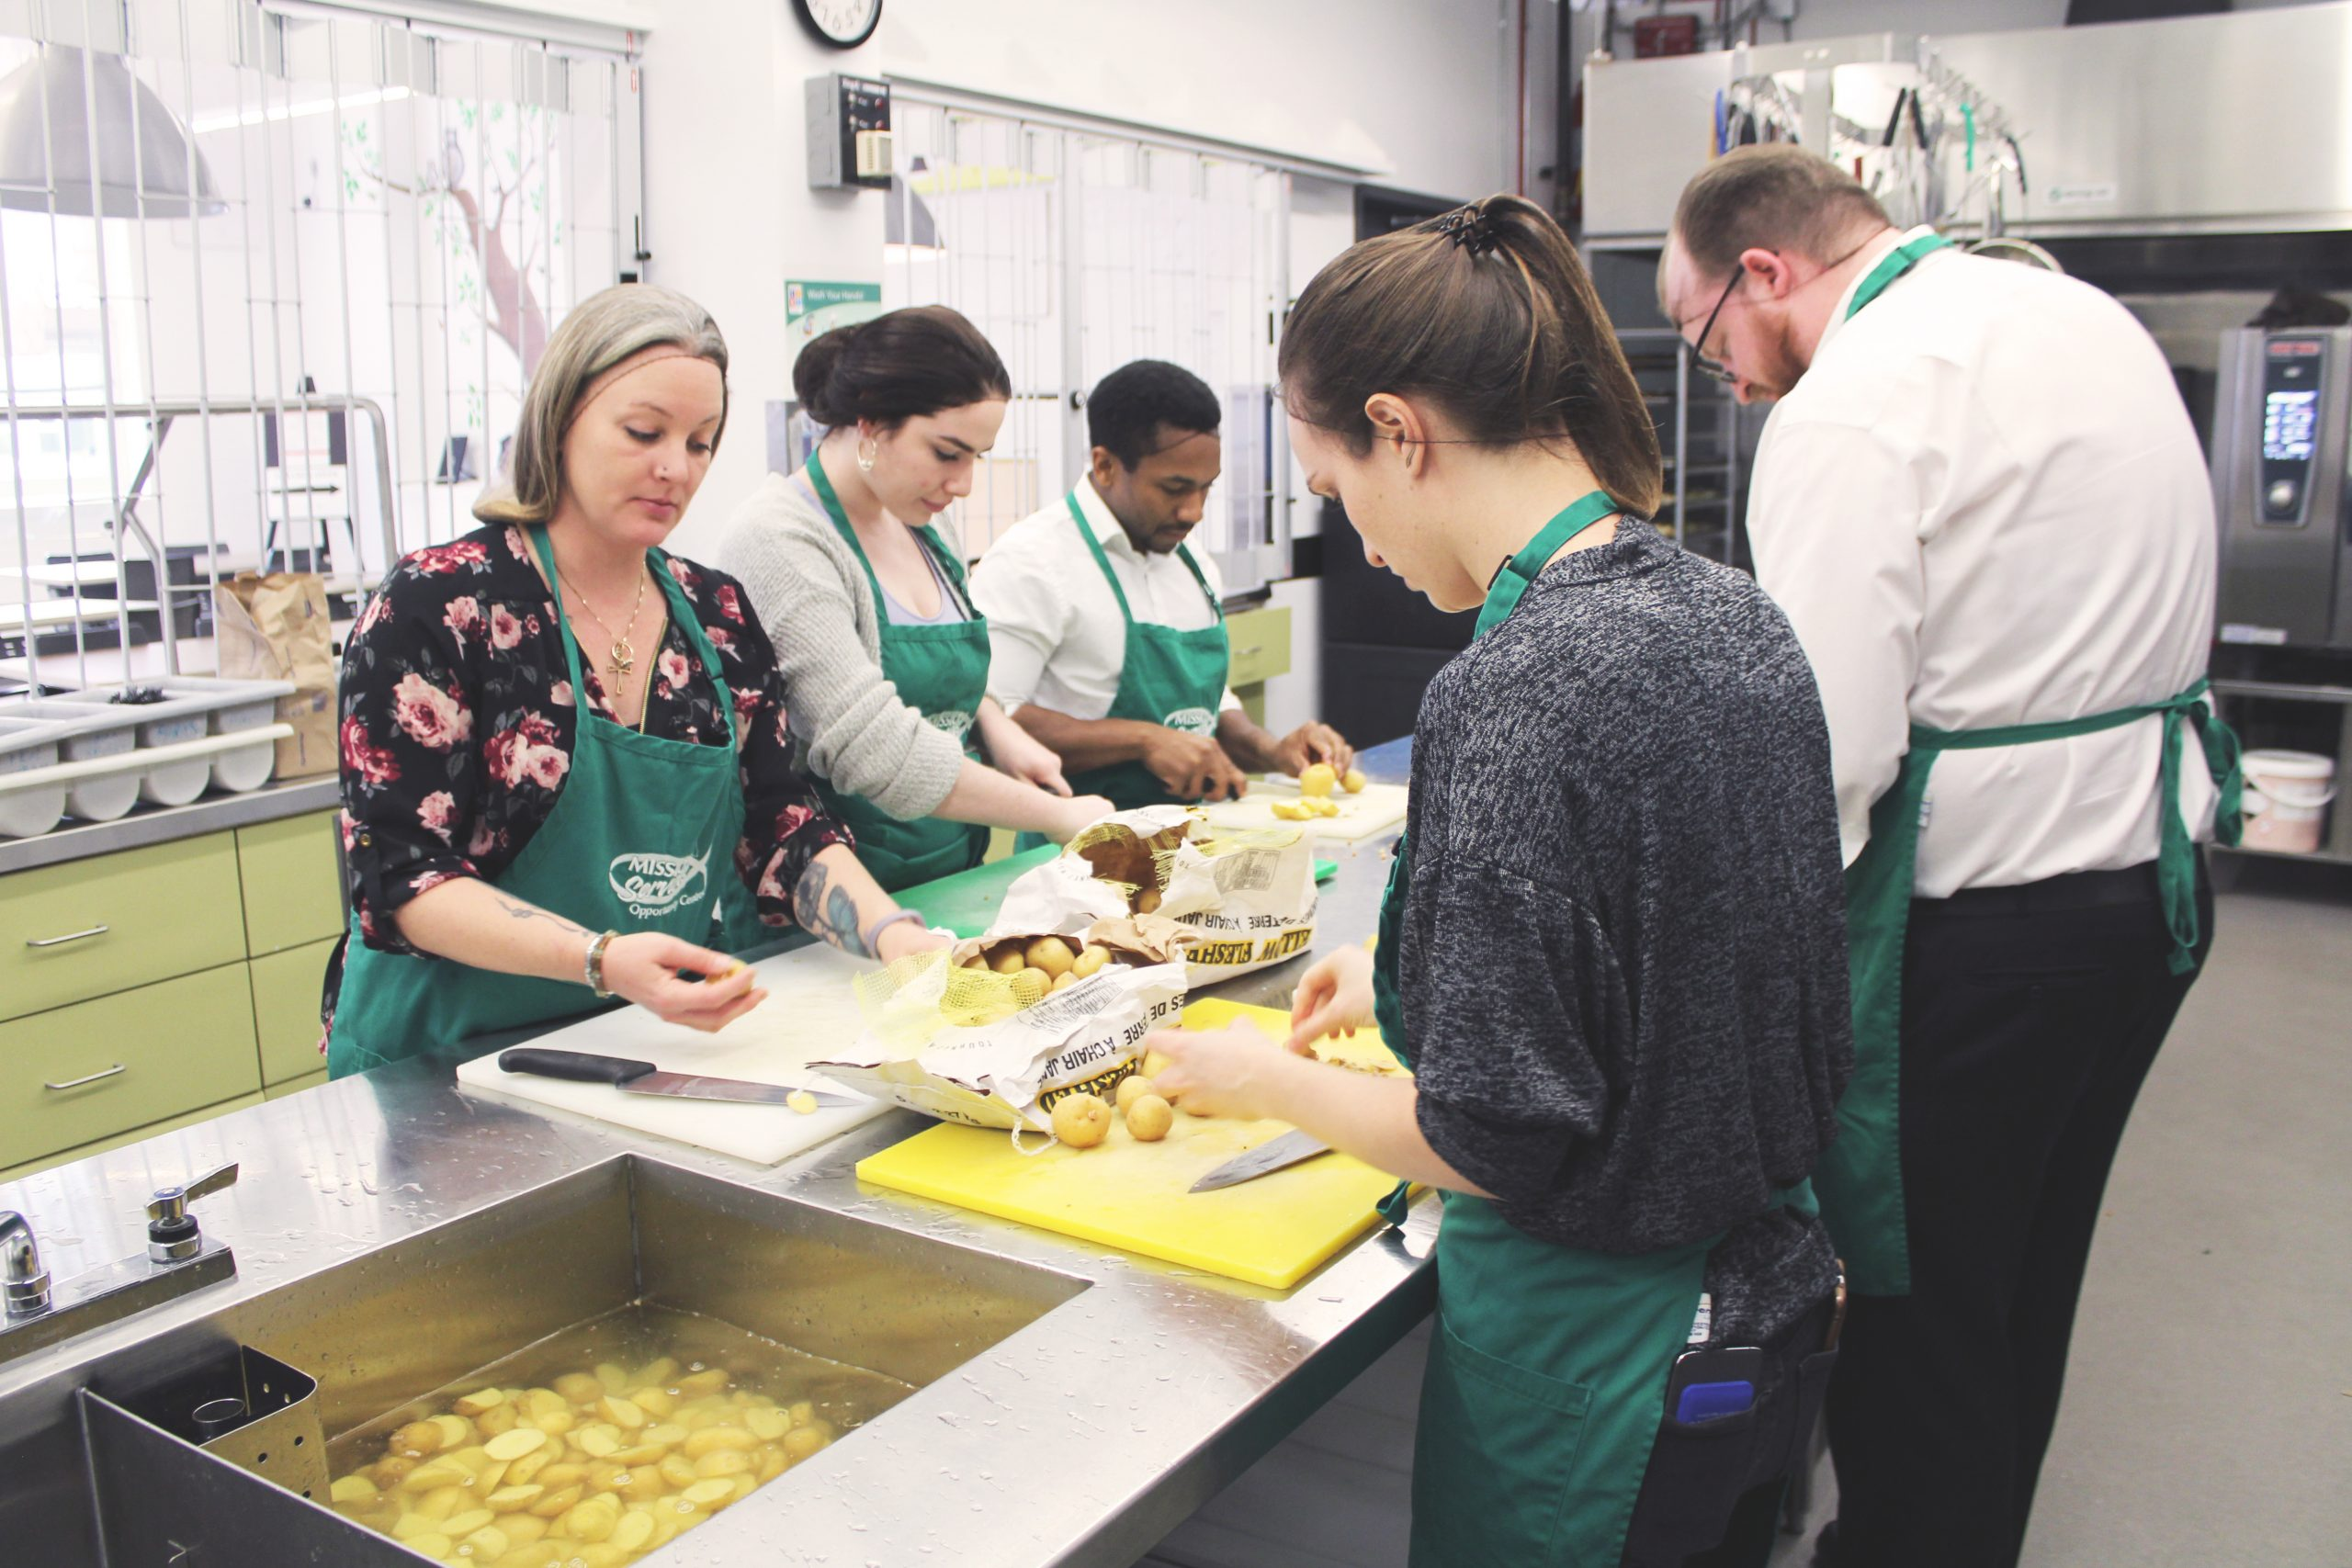 Volunteers helping prep food